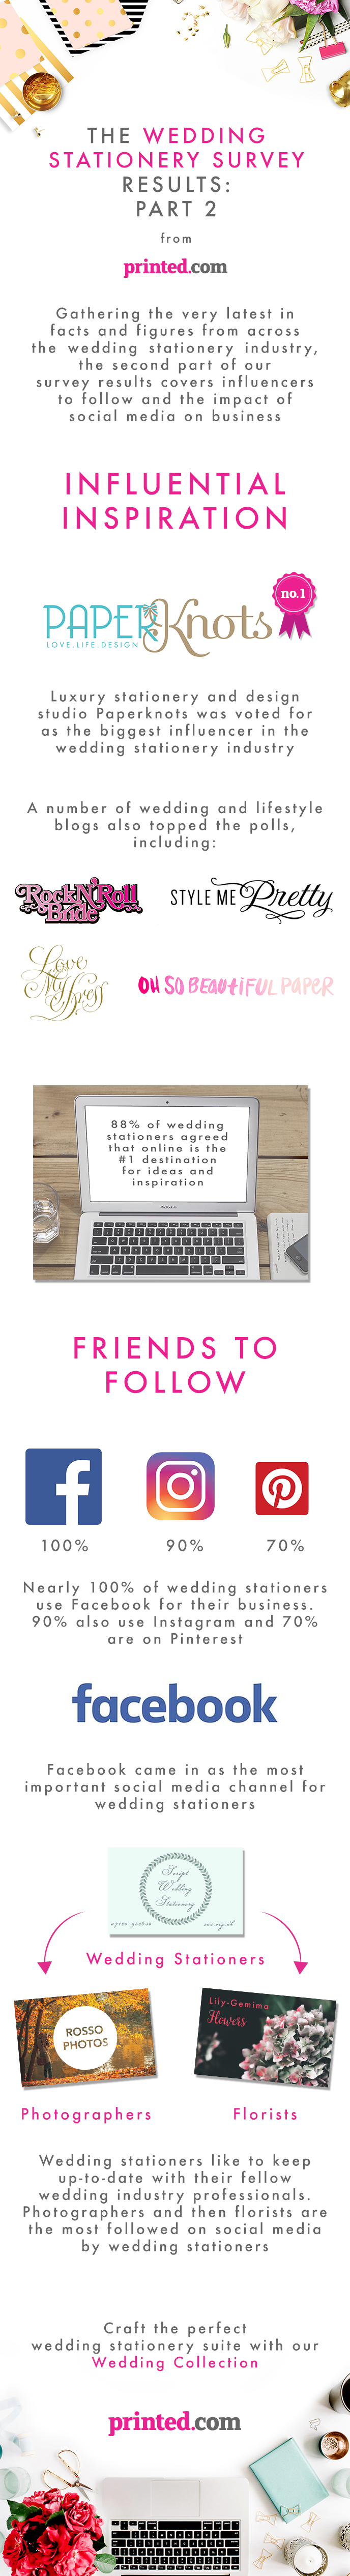 Second Half of The Wedding Stationery Survey Infographic